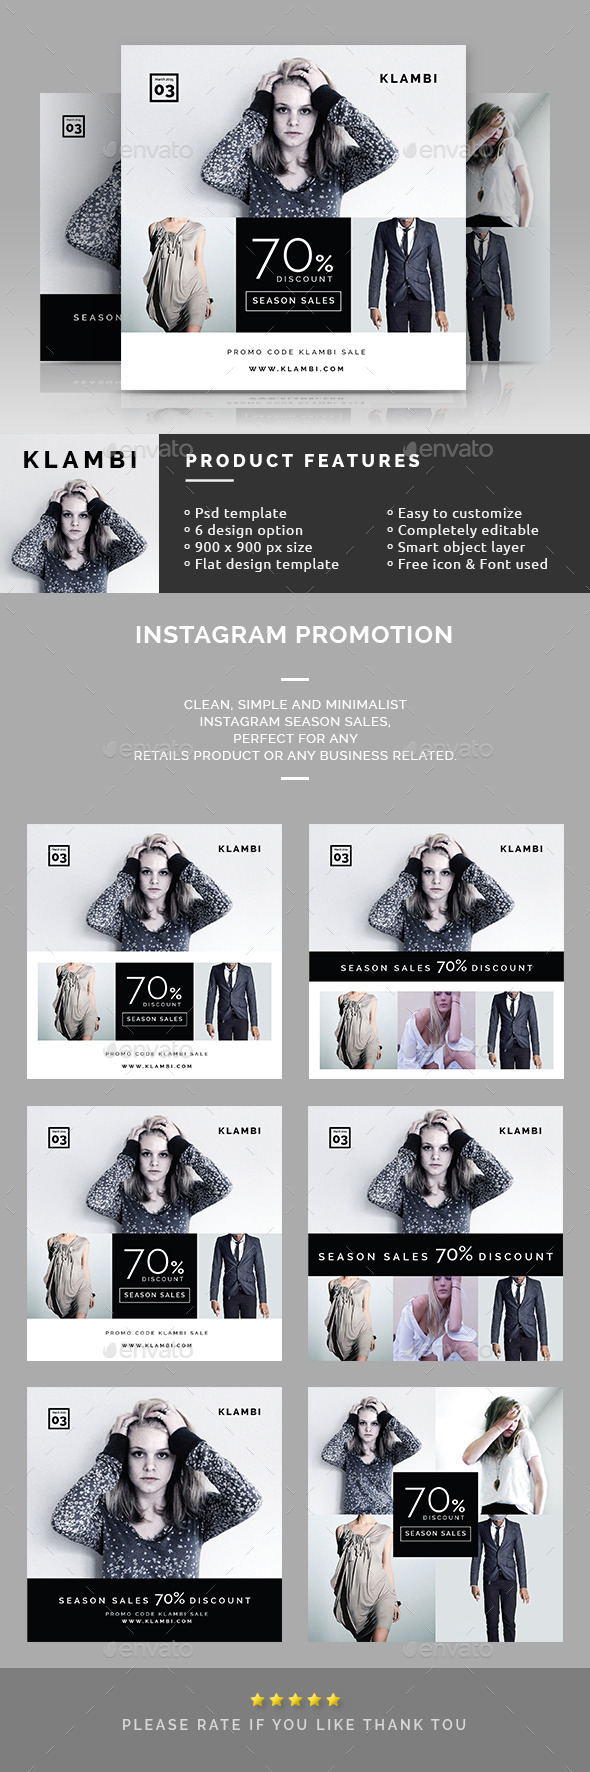 Instagram Promotion Banners - Miscellaneous Social Media